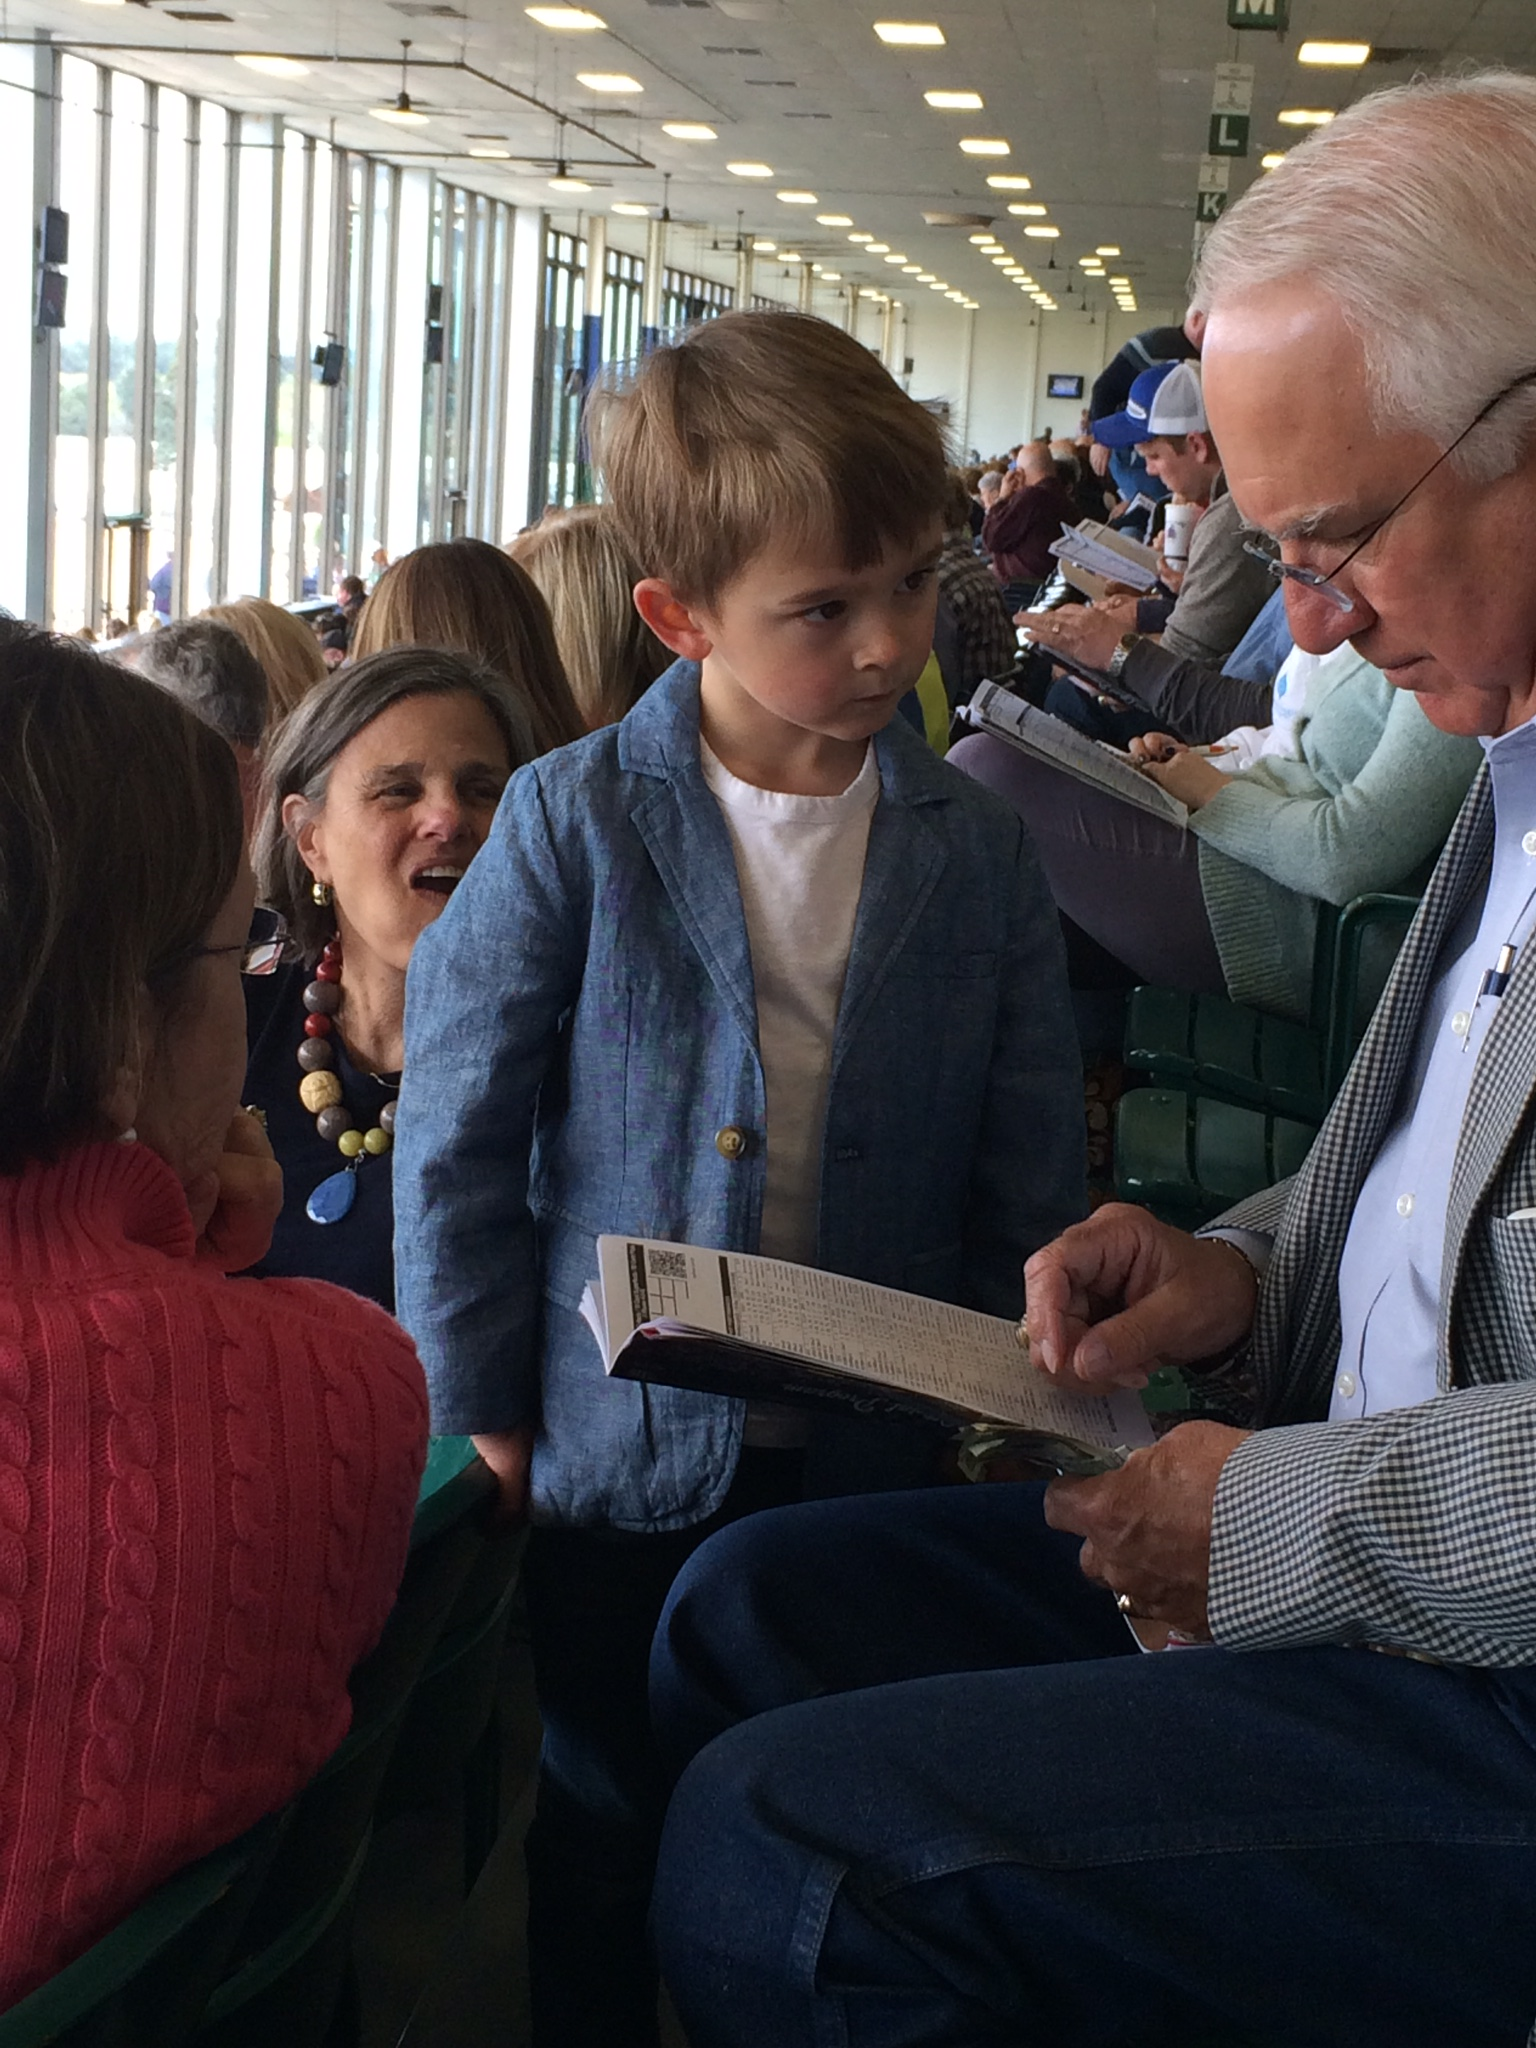 I'm just sayin', there's a chance asher might become a bookie when he grows up.  he was even approaching people he didn't know asking who they were betting on.